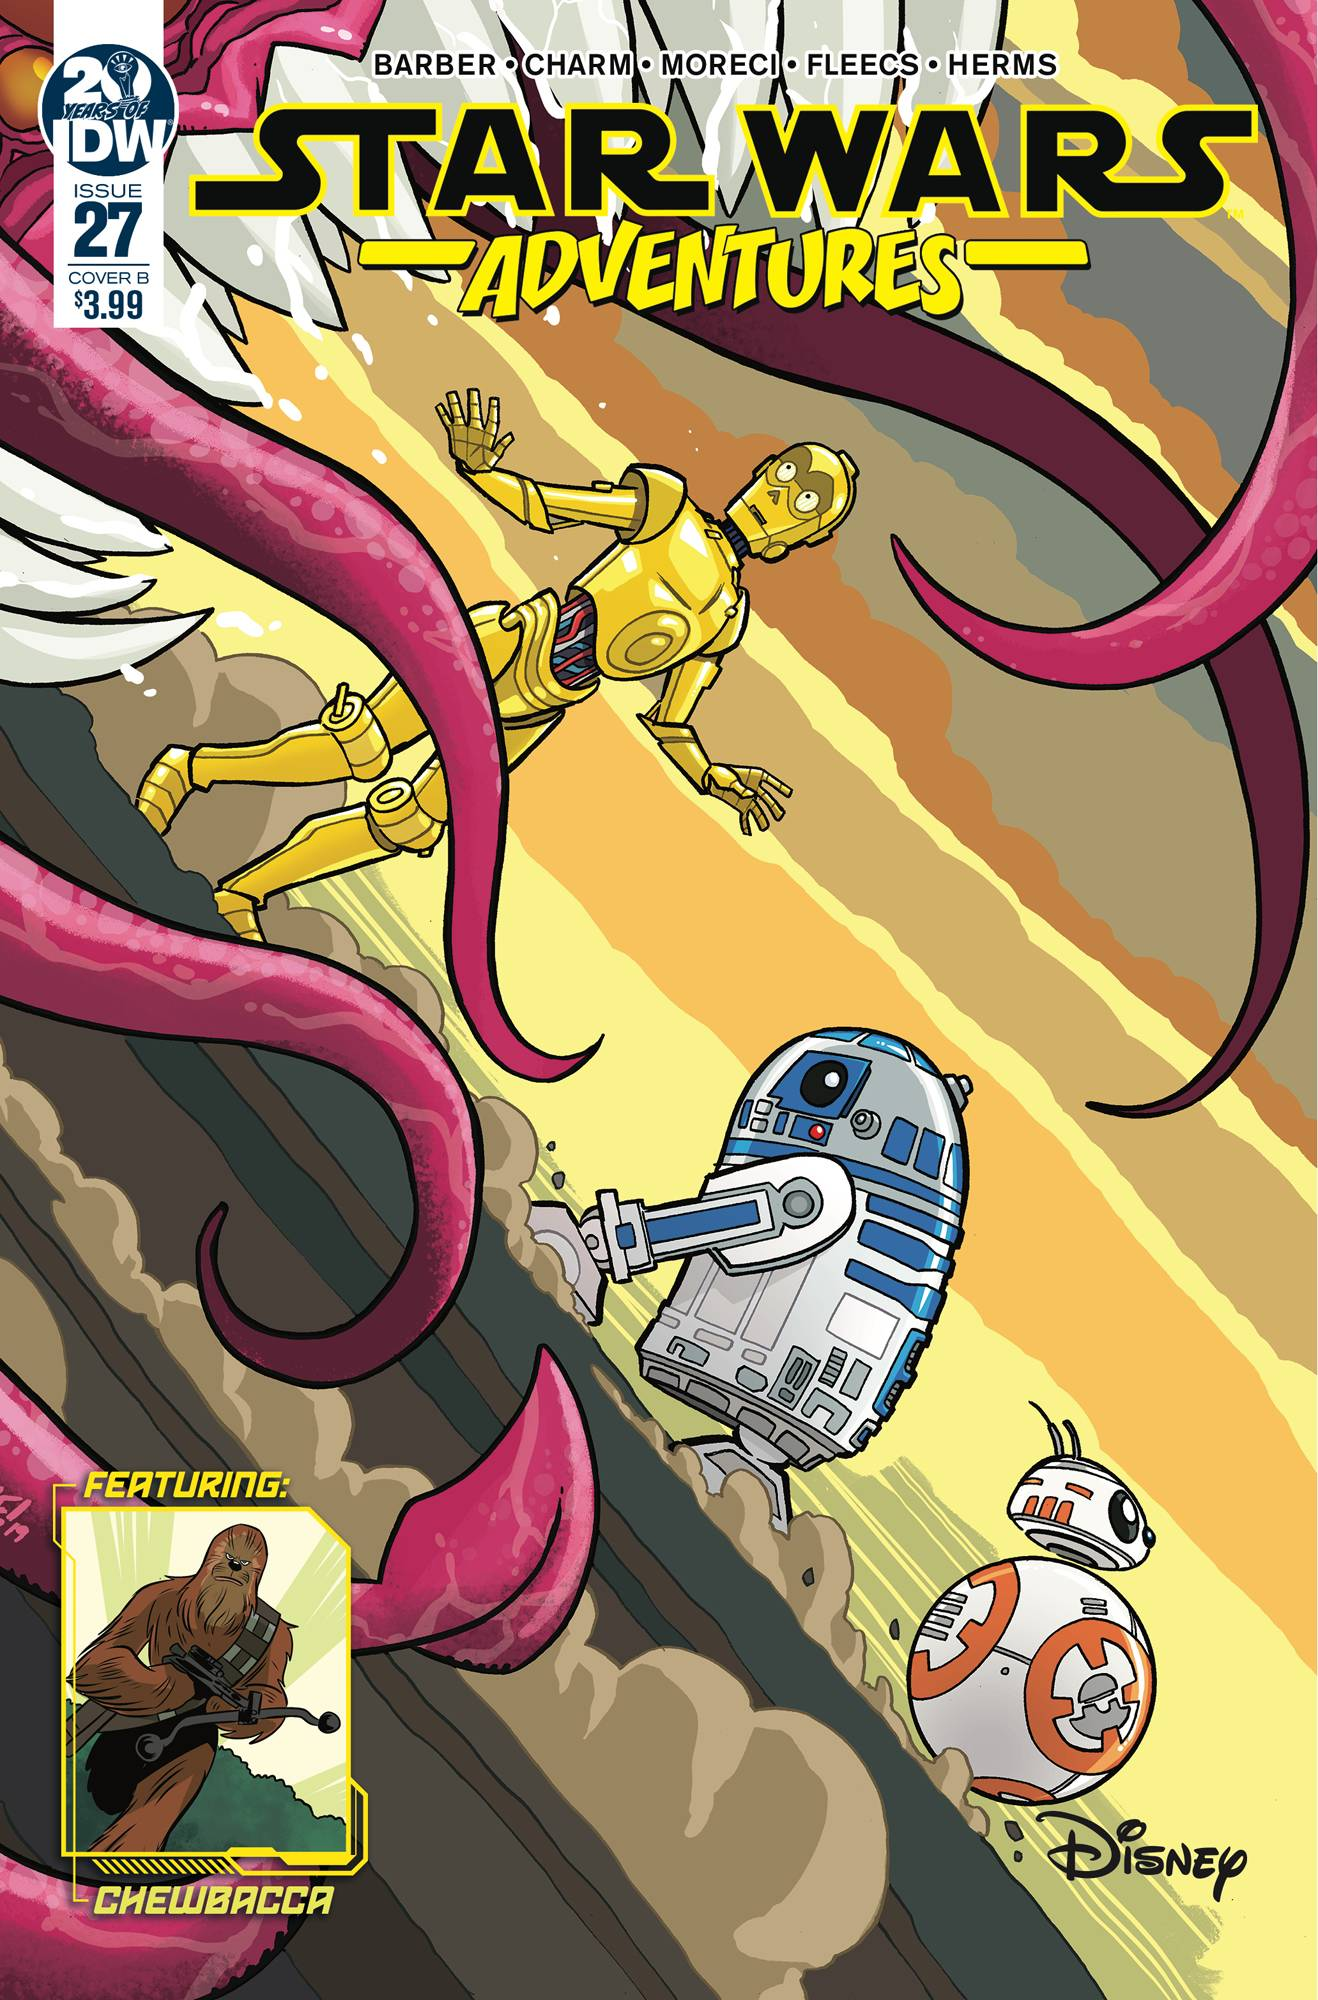 STAR WARS ADVENTURES #27 CVR B FLEECS